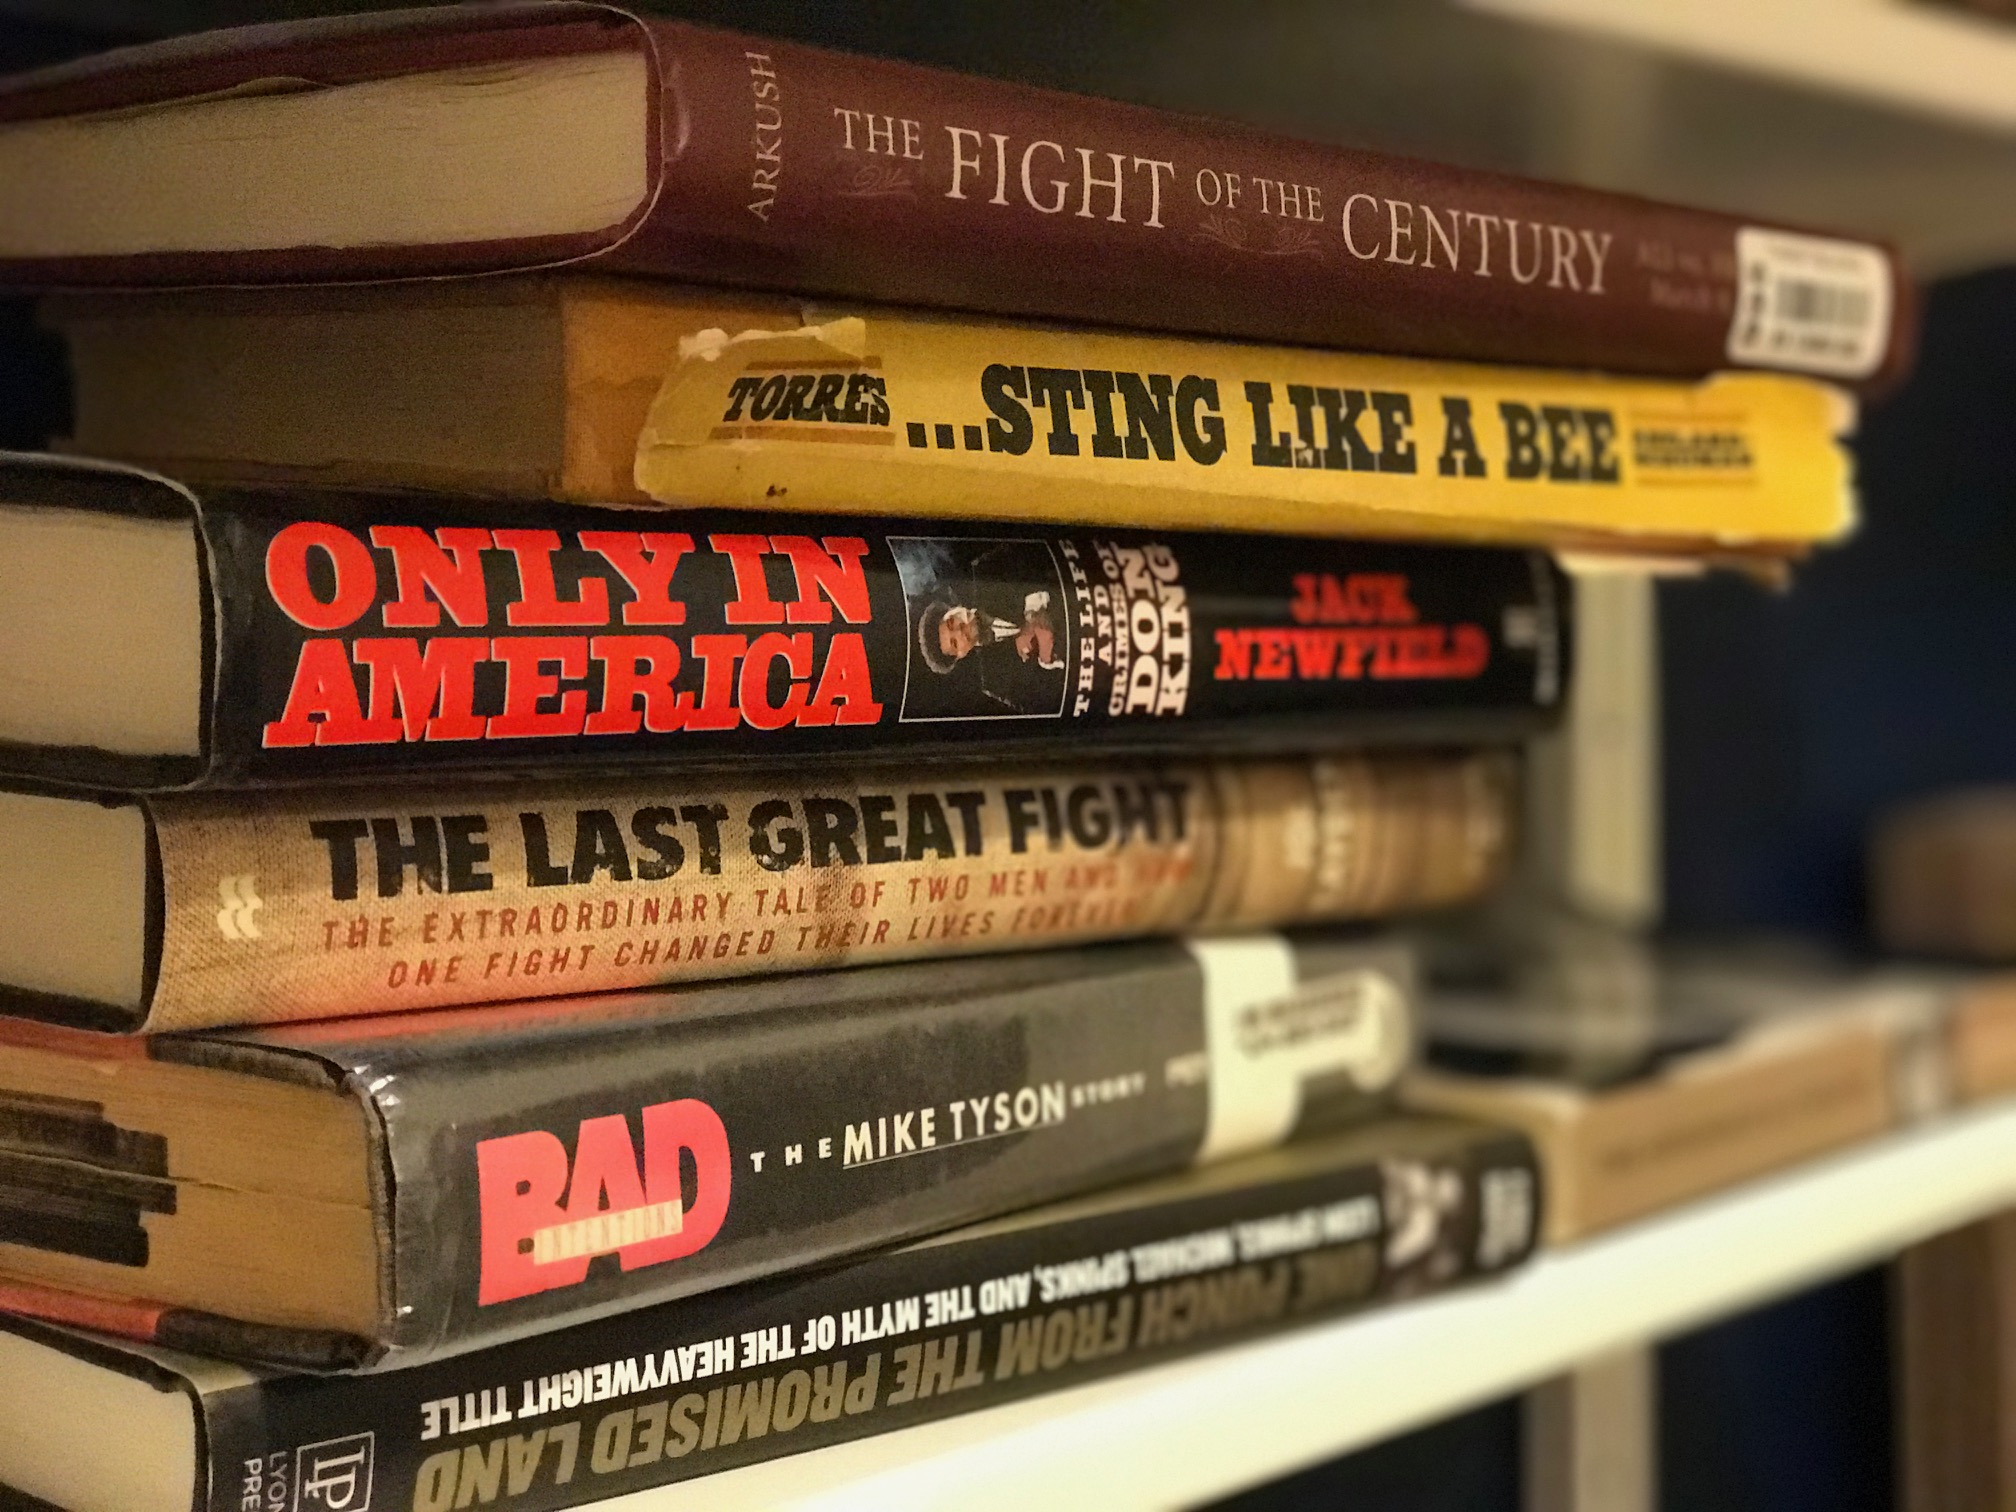 A portion of my boxing bookshelf